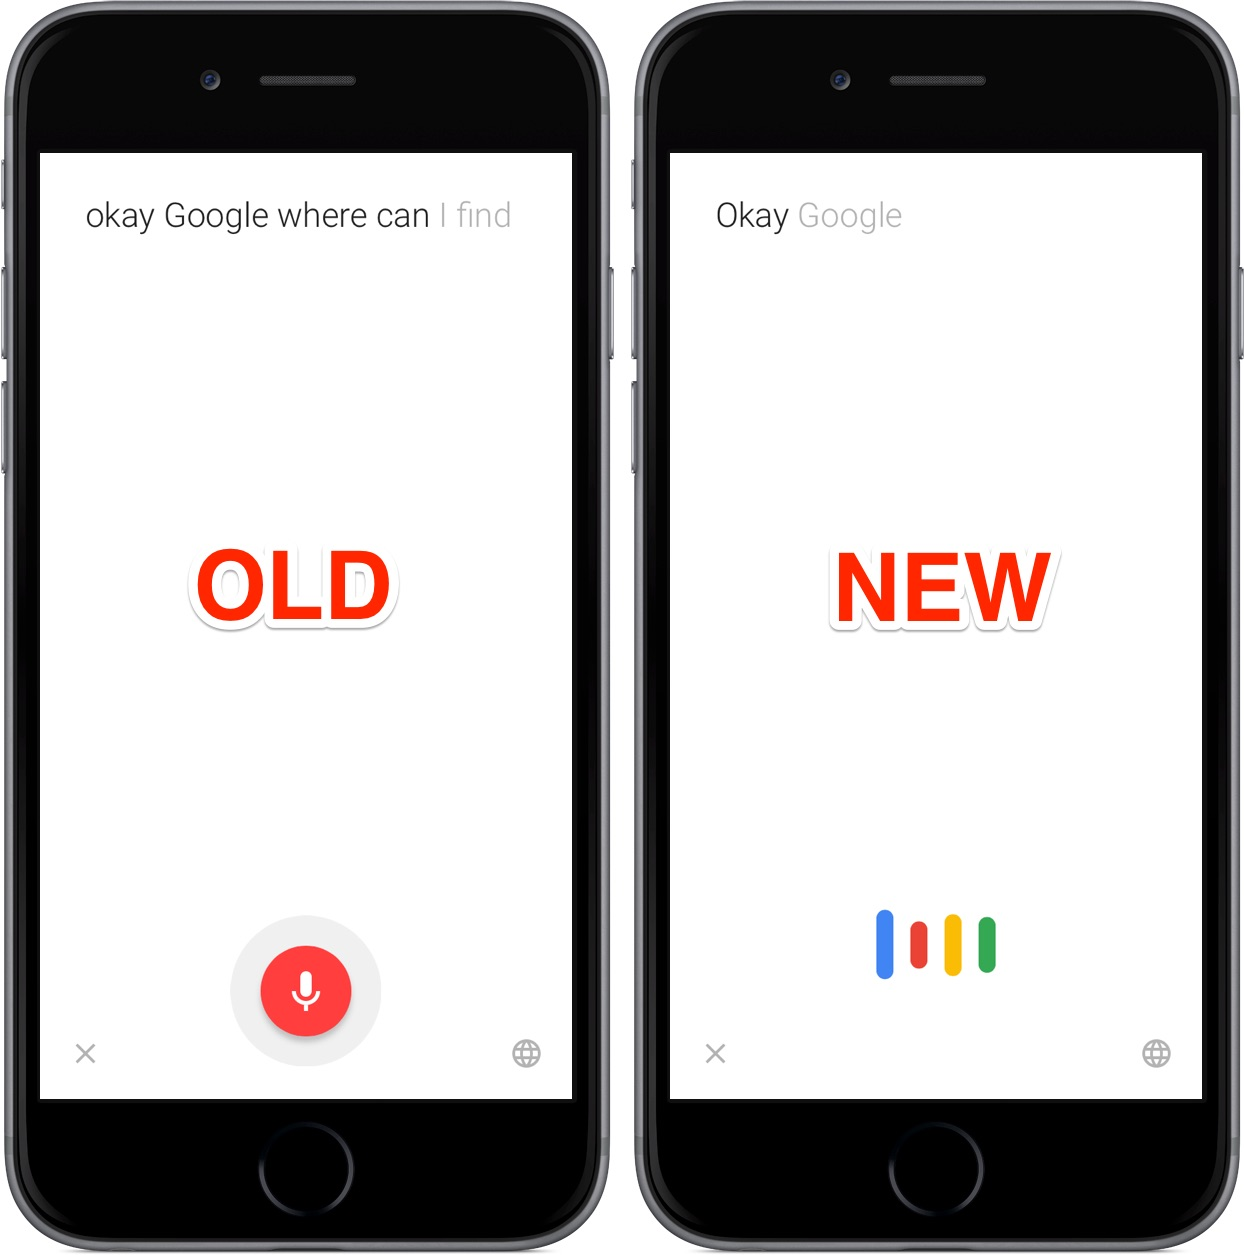 Official Google app revamps voice search interface and Google Now cards